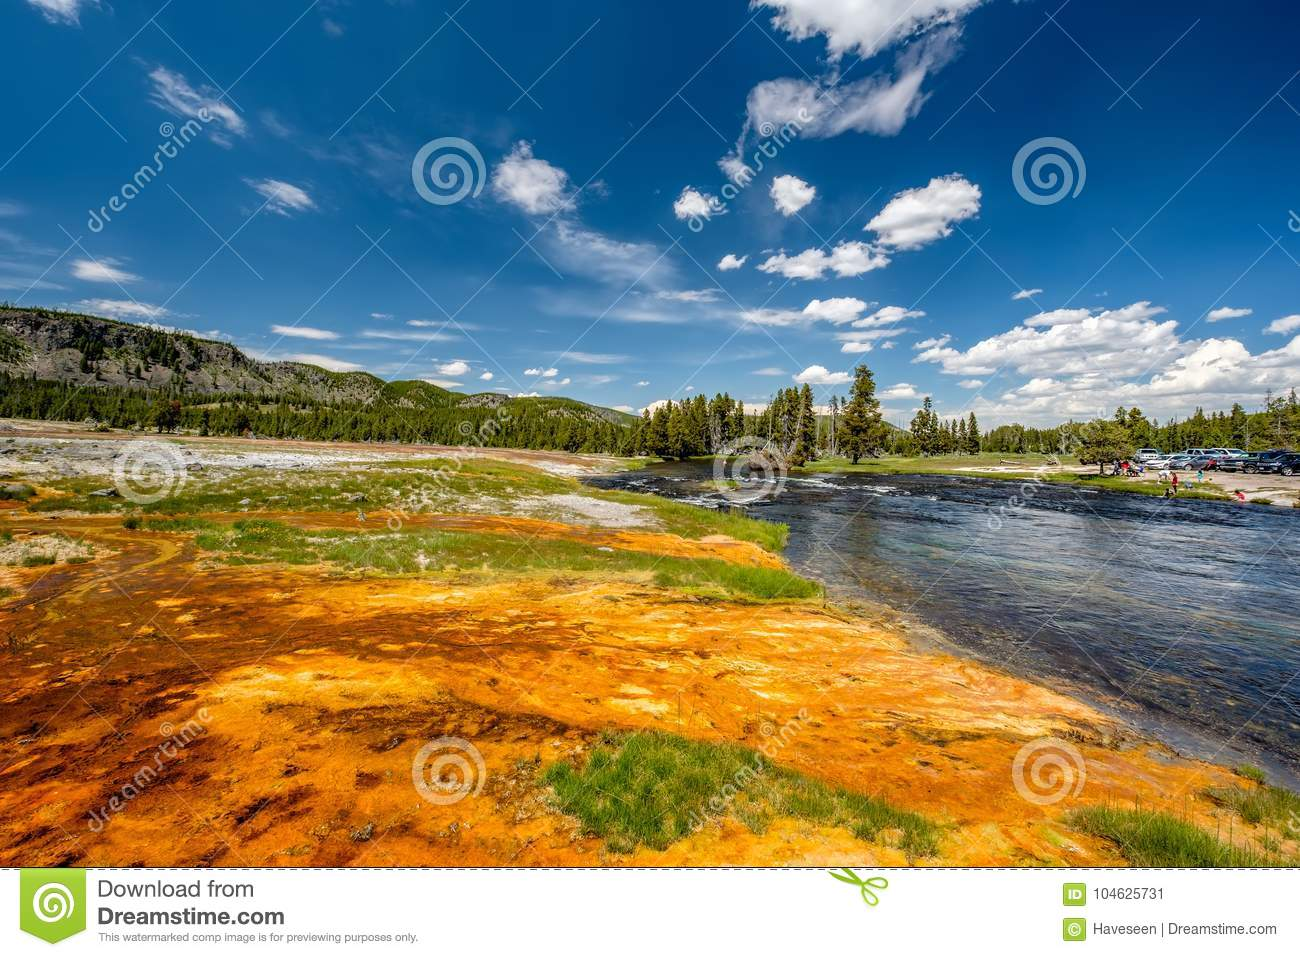 Download Fireholerivier, Het Nationale Park Van Yellowstone, Wyoming Stock Afbeelding - Afbeelding bestaande uit mening, vallei: 104625731